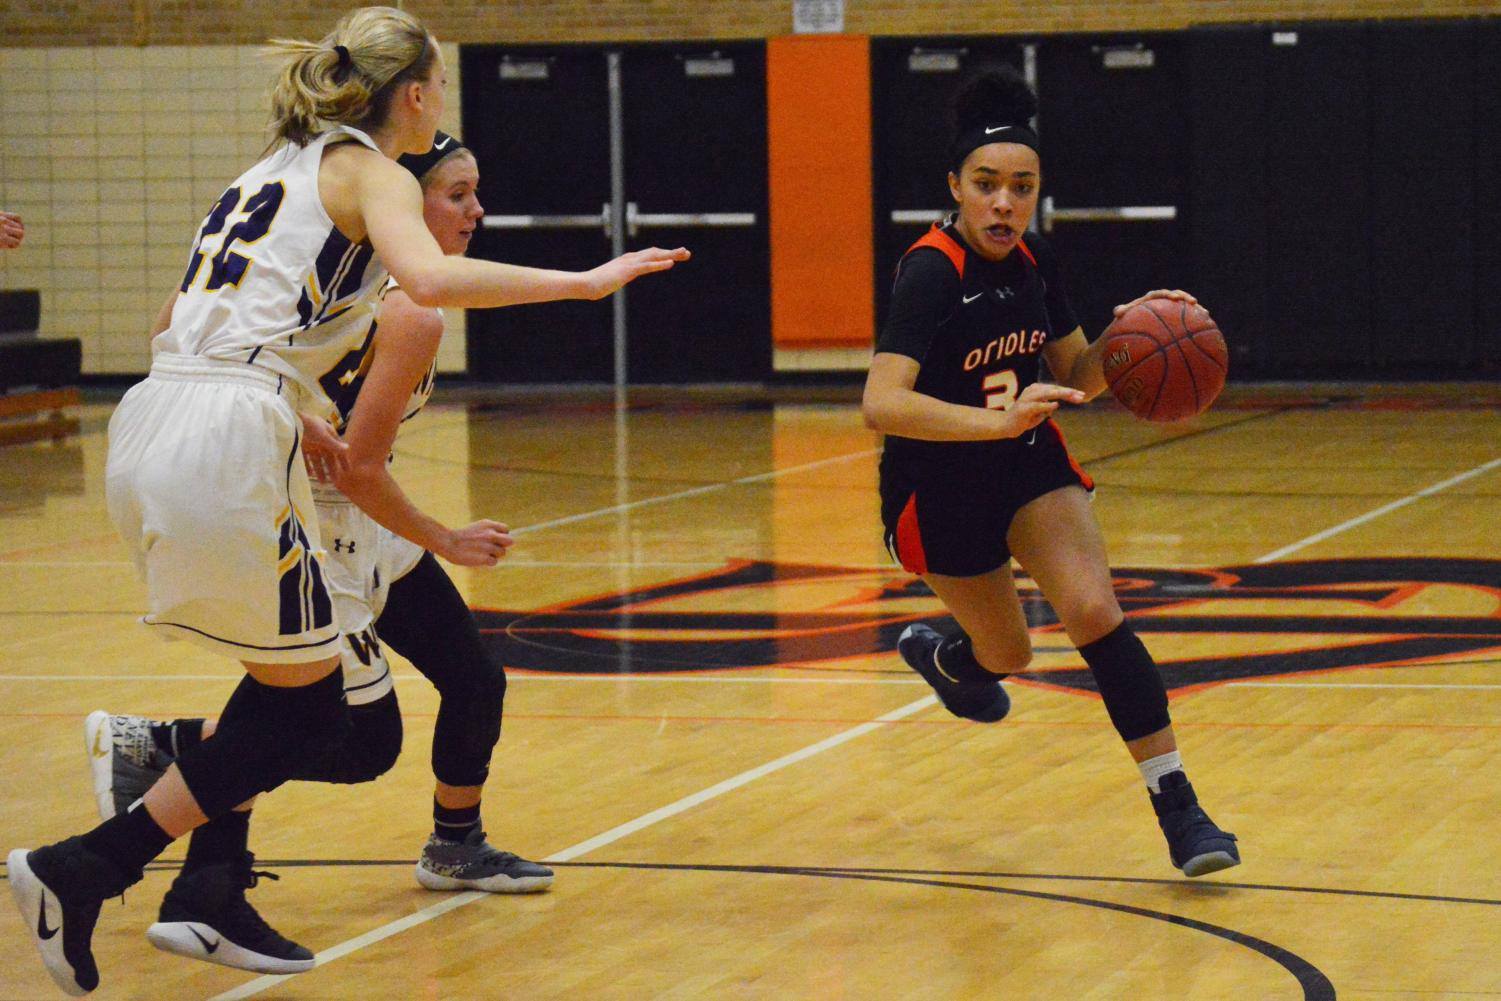 Freshman Joelle Sheffield dribbles down the court in the Orioles game against Waconia Dec. 5. The next girl's basketball game is at 6 p.m. Dec. 8 at Fridley High School.